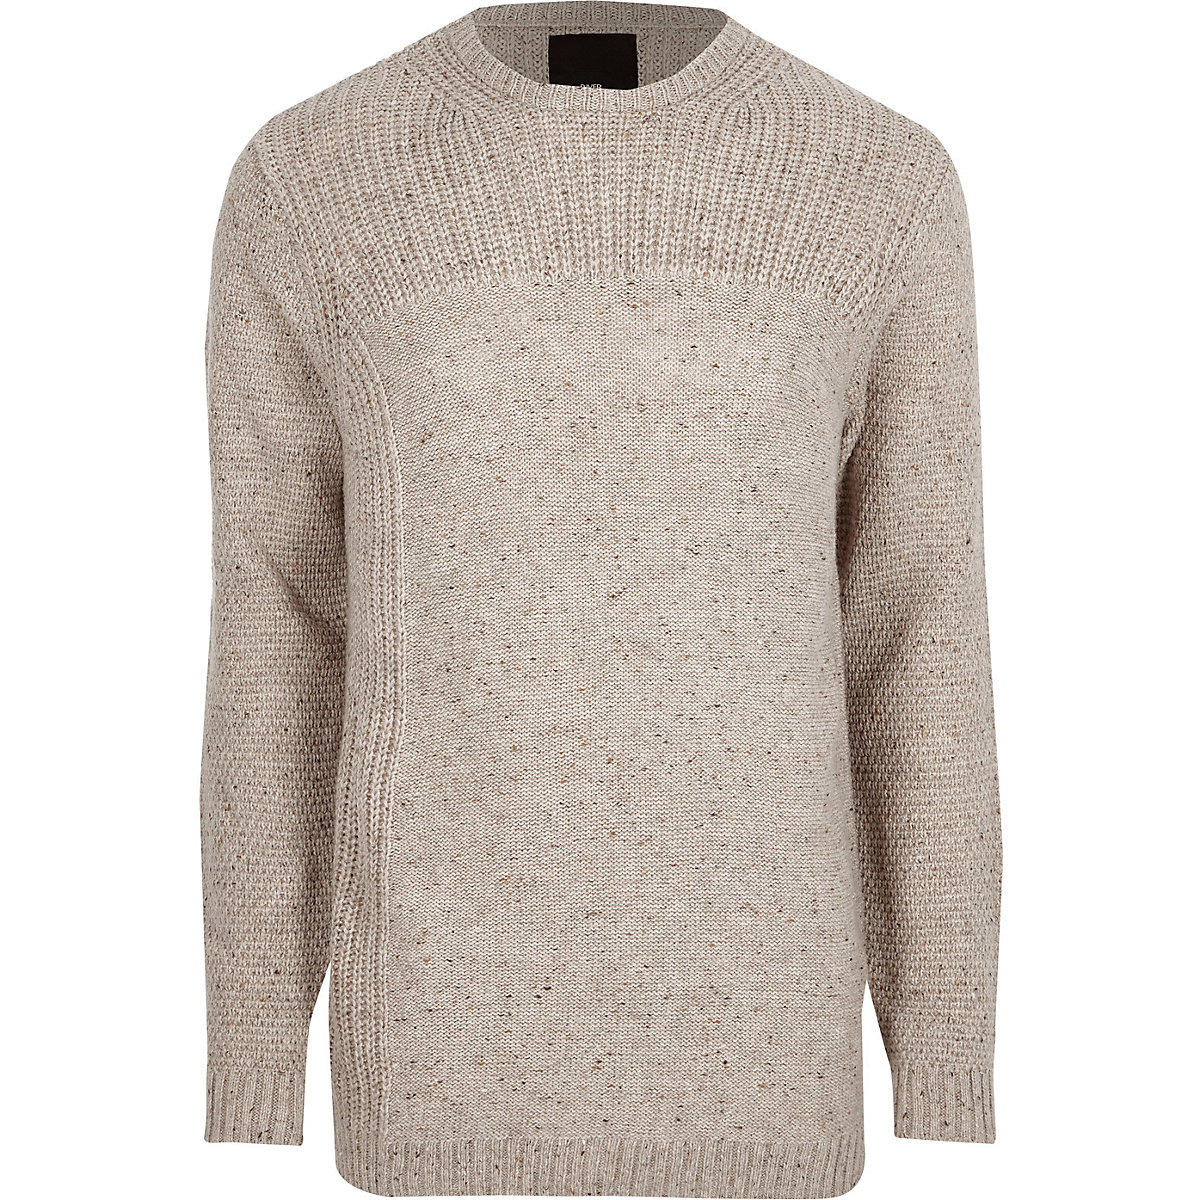 Cream textured knit crew neck jumper